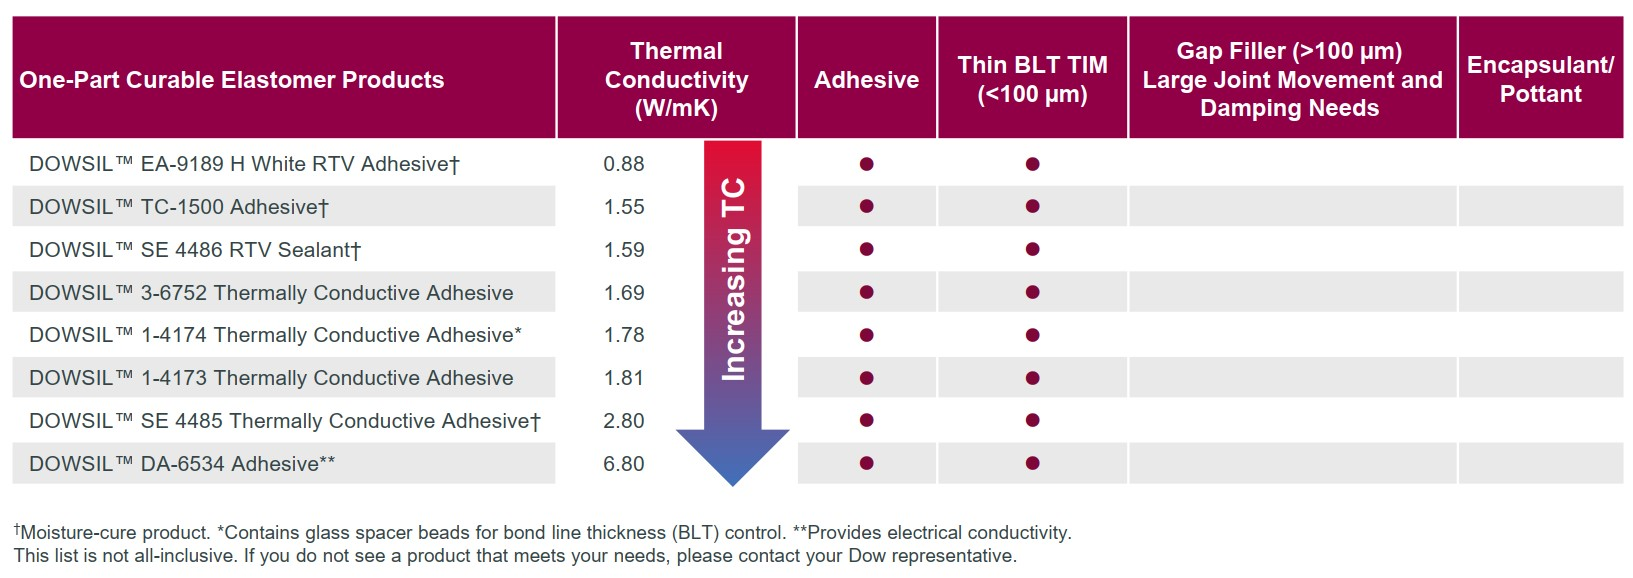 Thermally Conductive Materials Product Summary2